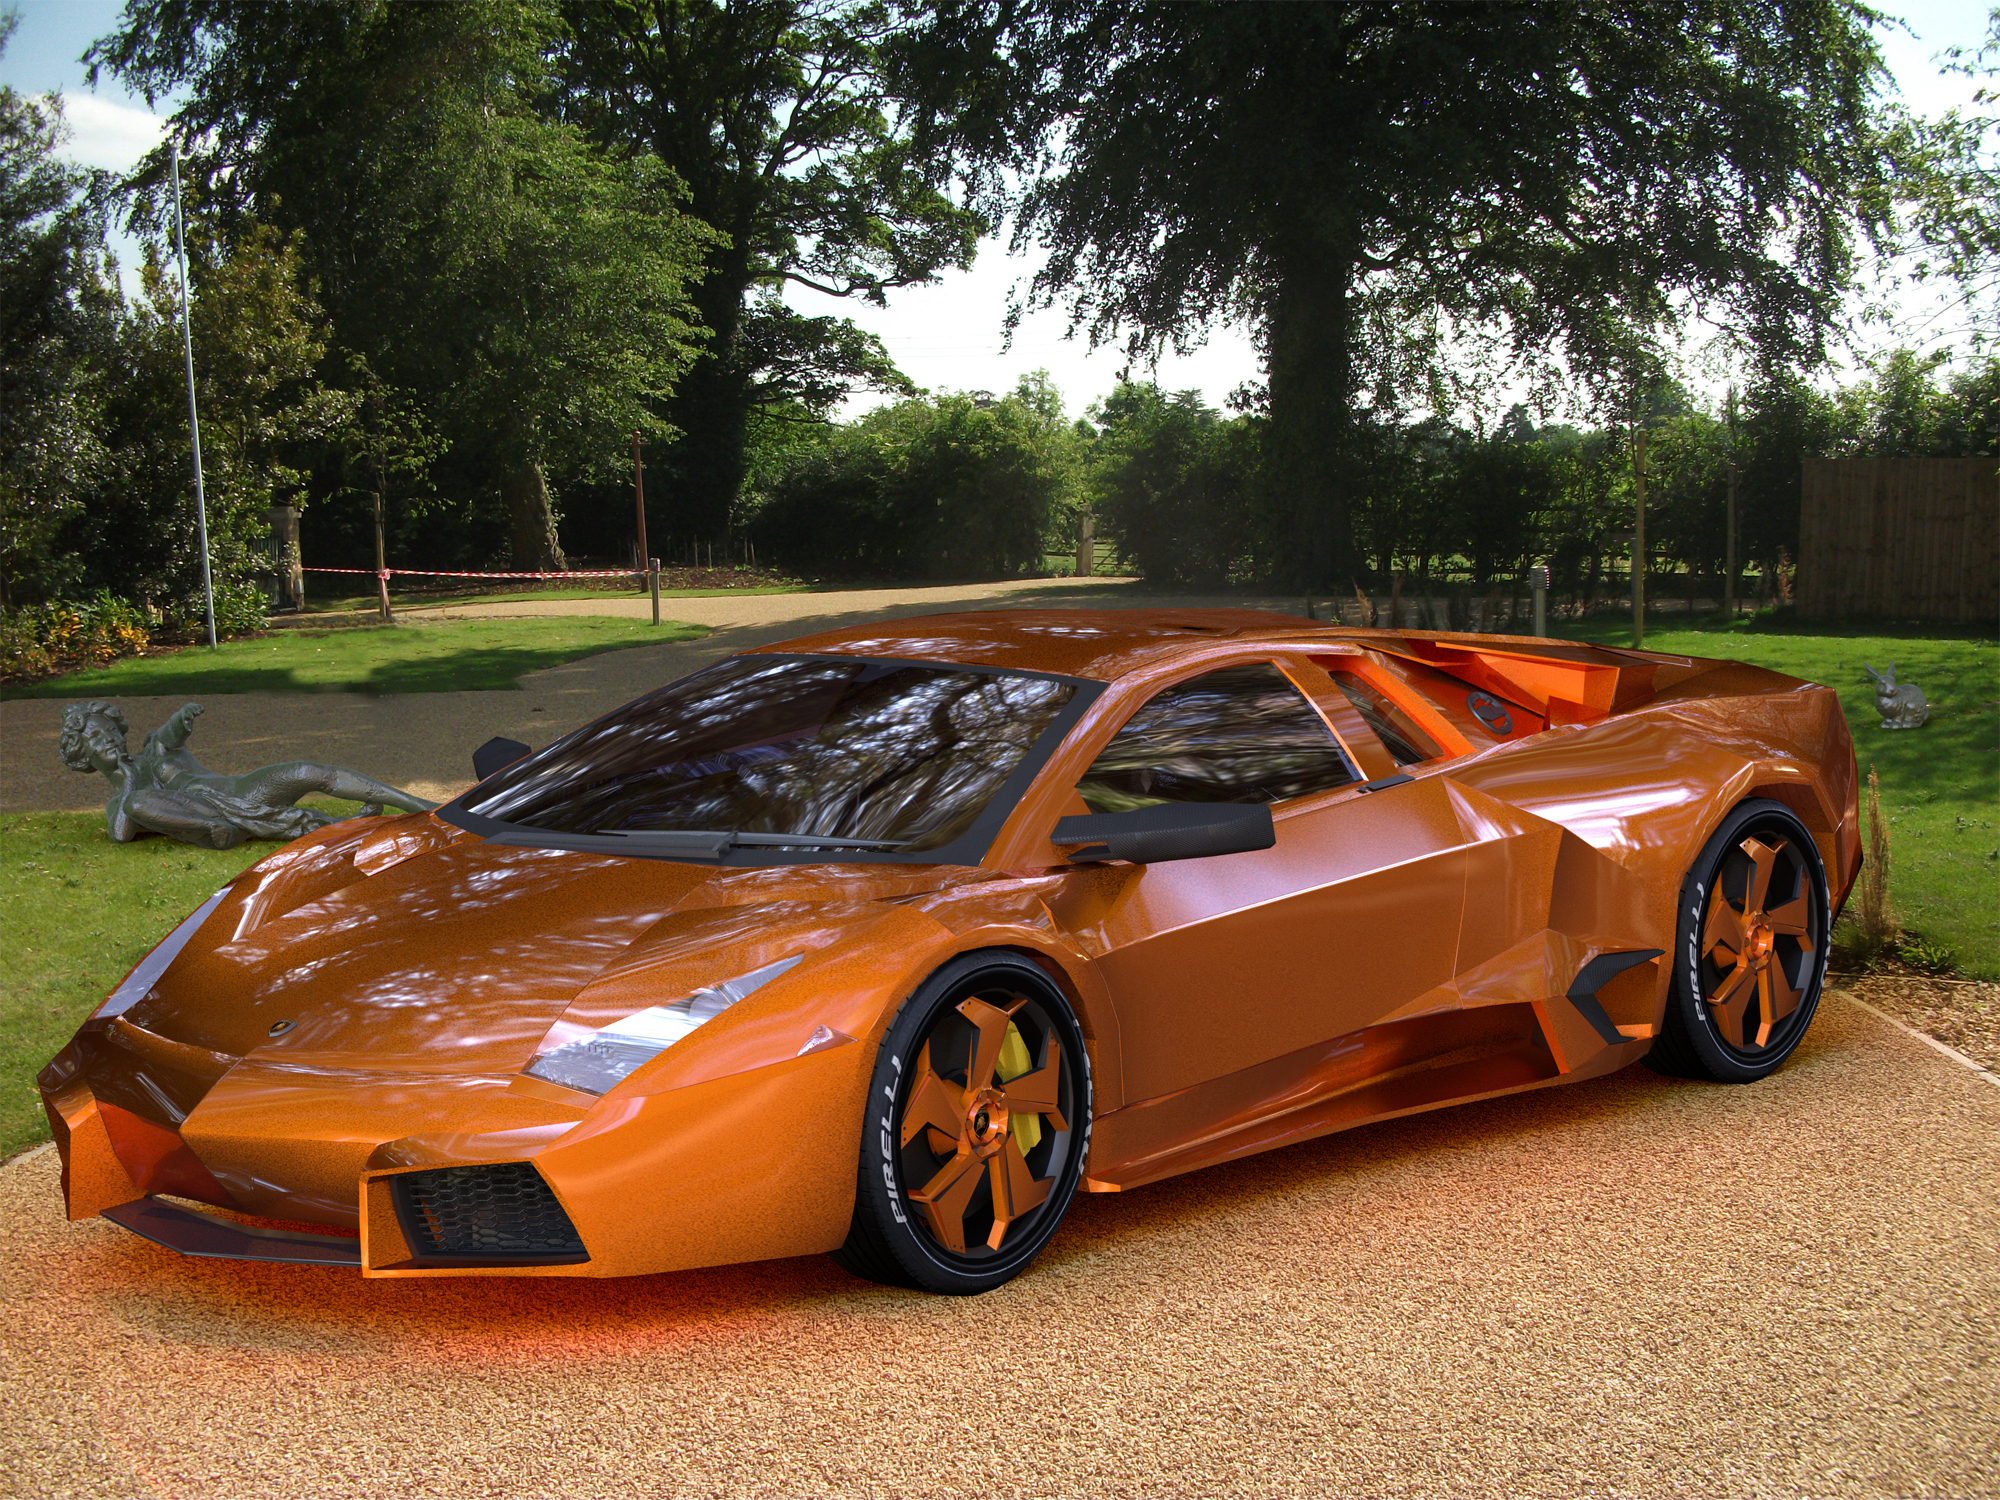 This Reventon has the McLaren Orange body colour.The back plate is a .jpg from a company selling driveways who will be using this render in promotional material.